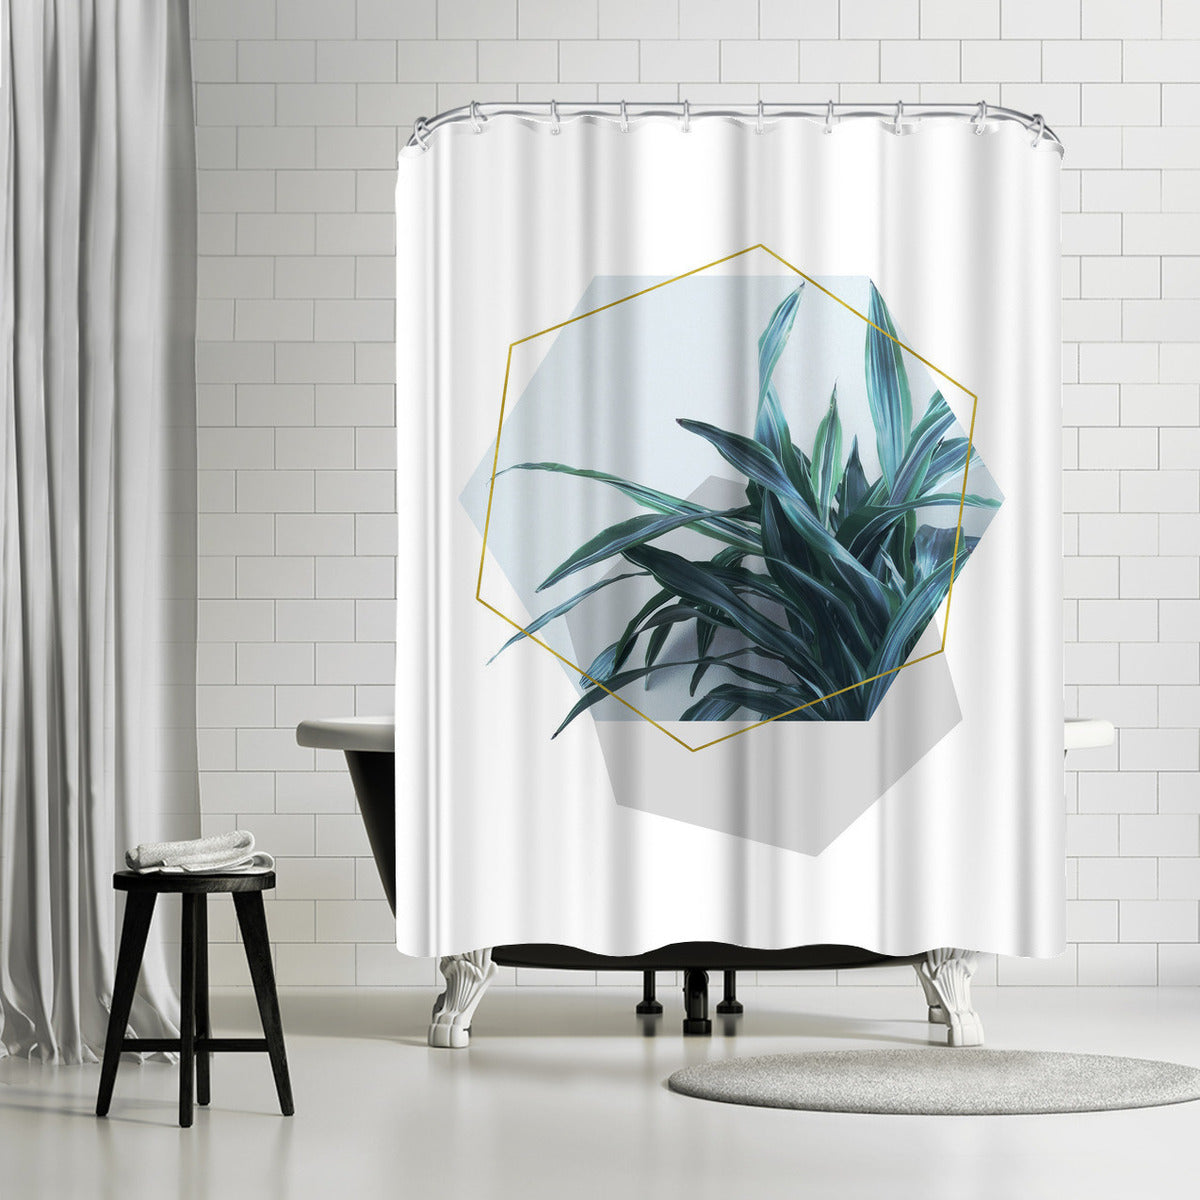 Leaves Geometry by Emanuela Carratoni Shower Curtain - Shower Curtain - Americanflat